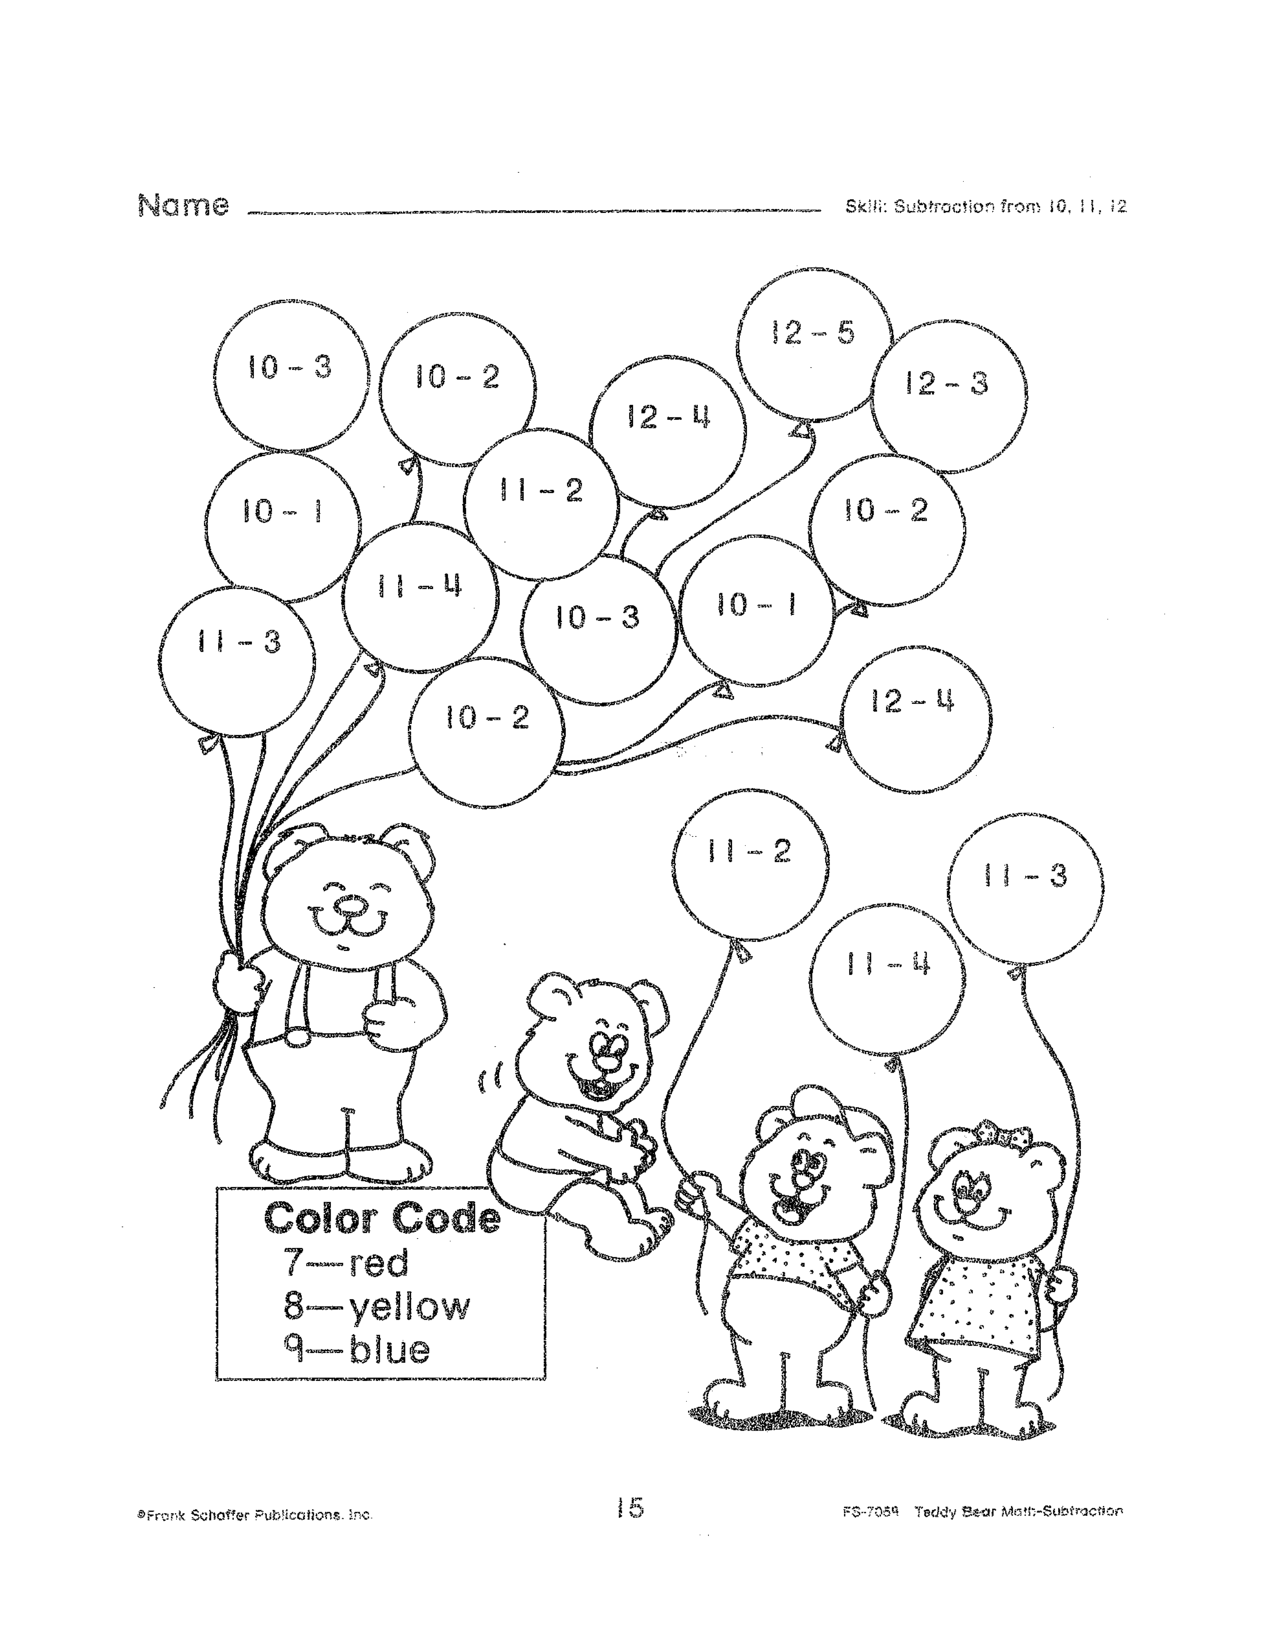 Printables Printable Worksheets For 2nd Graders 1000 images about 2nd grade learning on pinterest dolch sight words word worksheets and place value worksheets